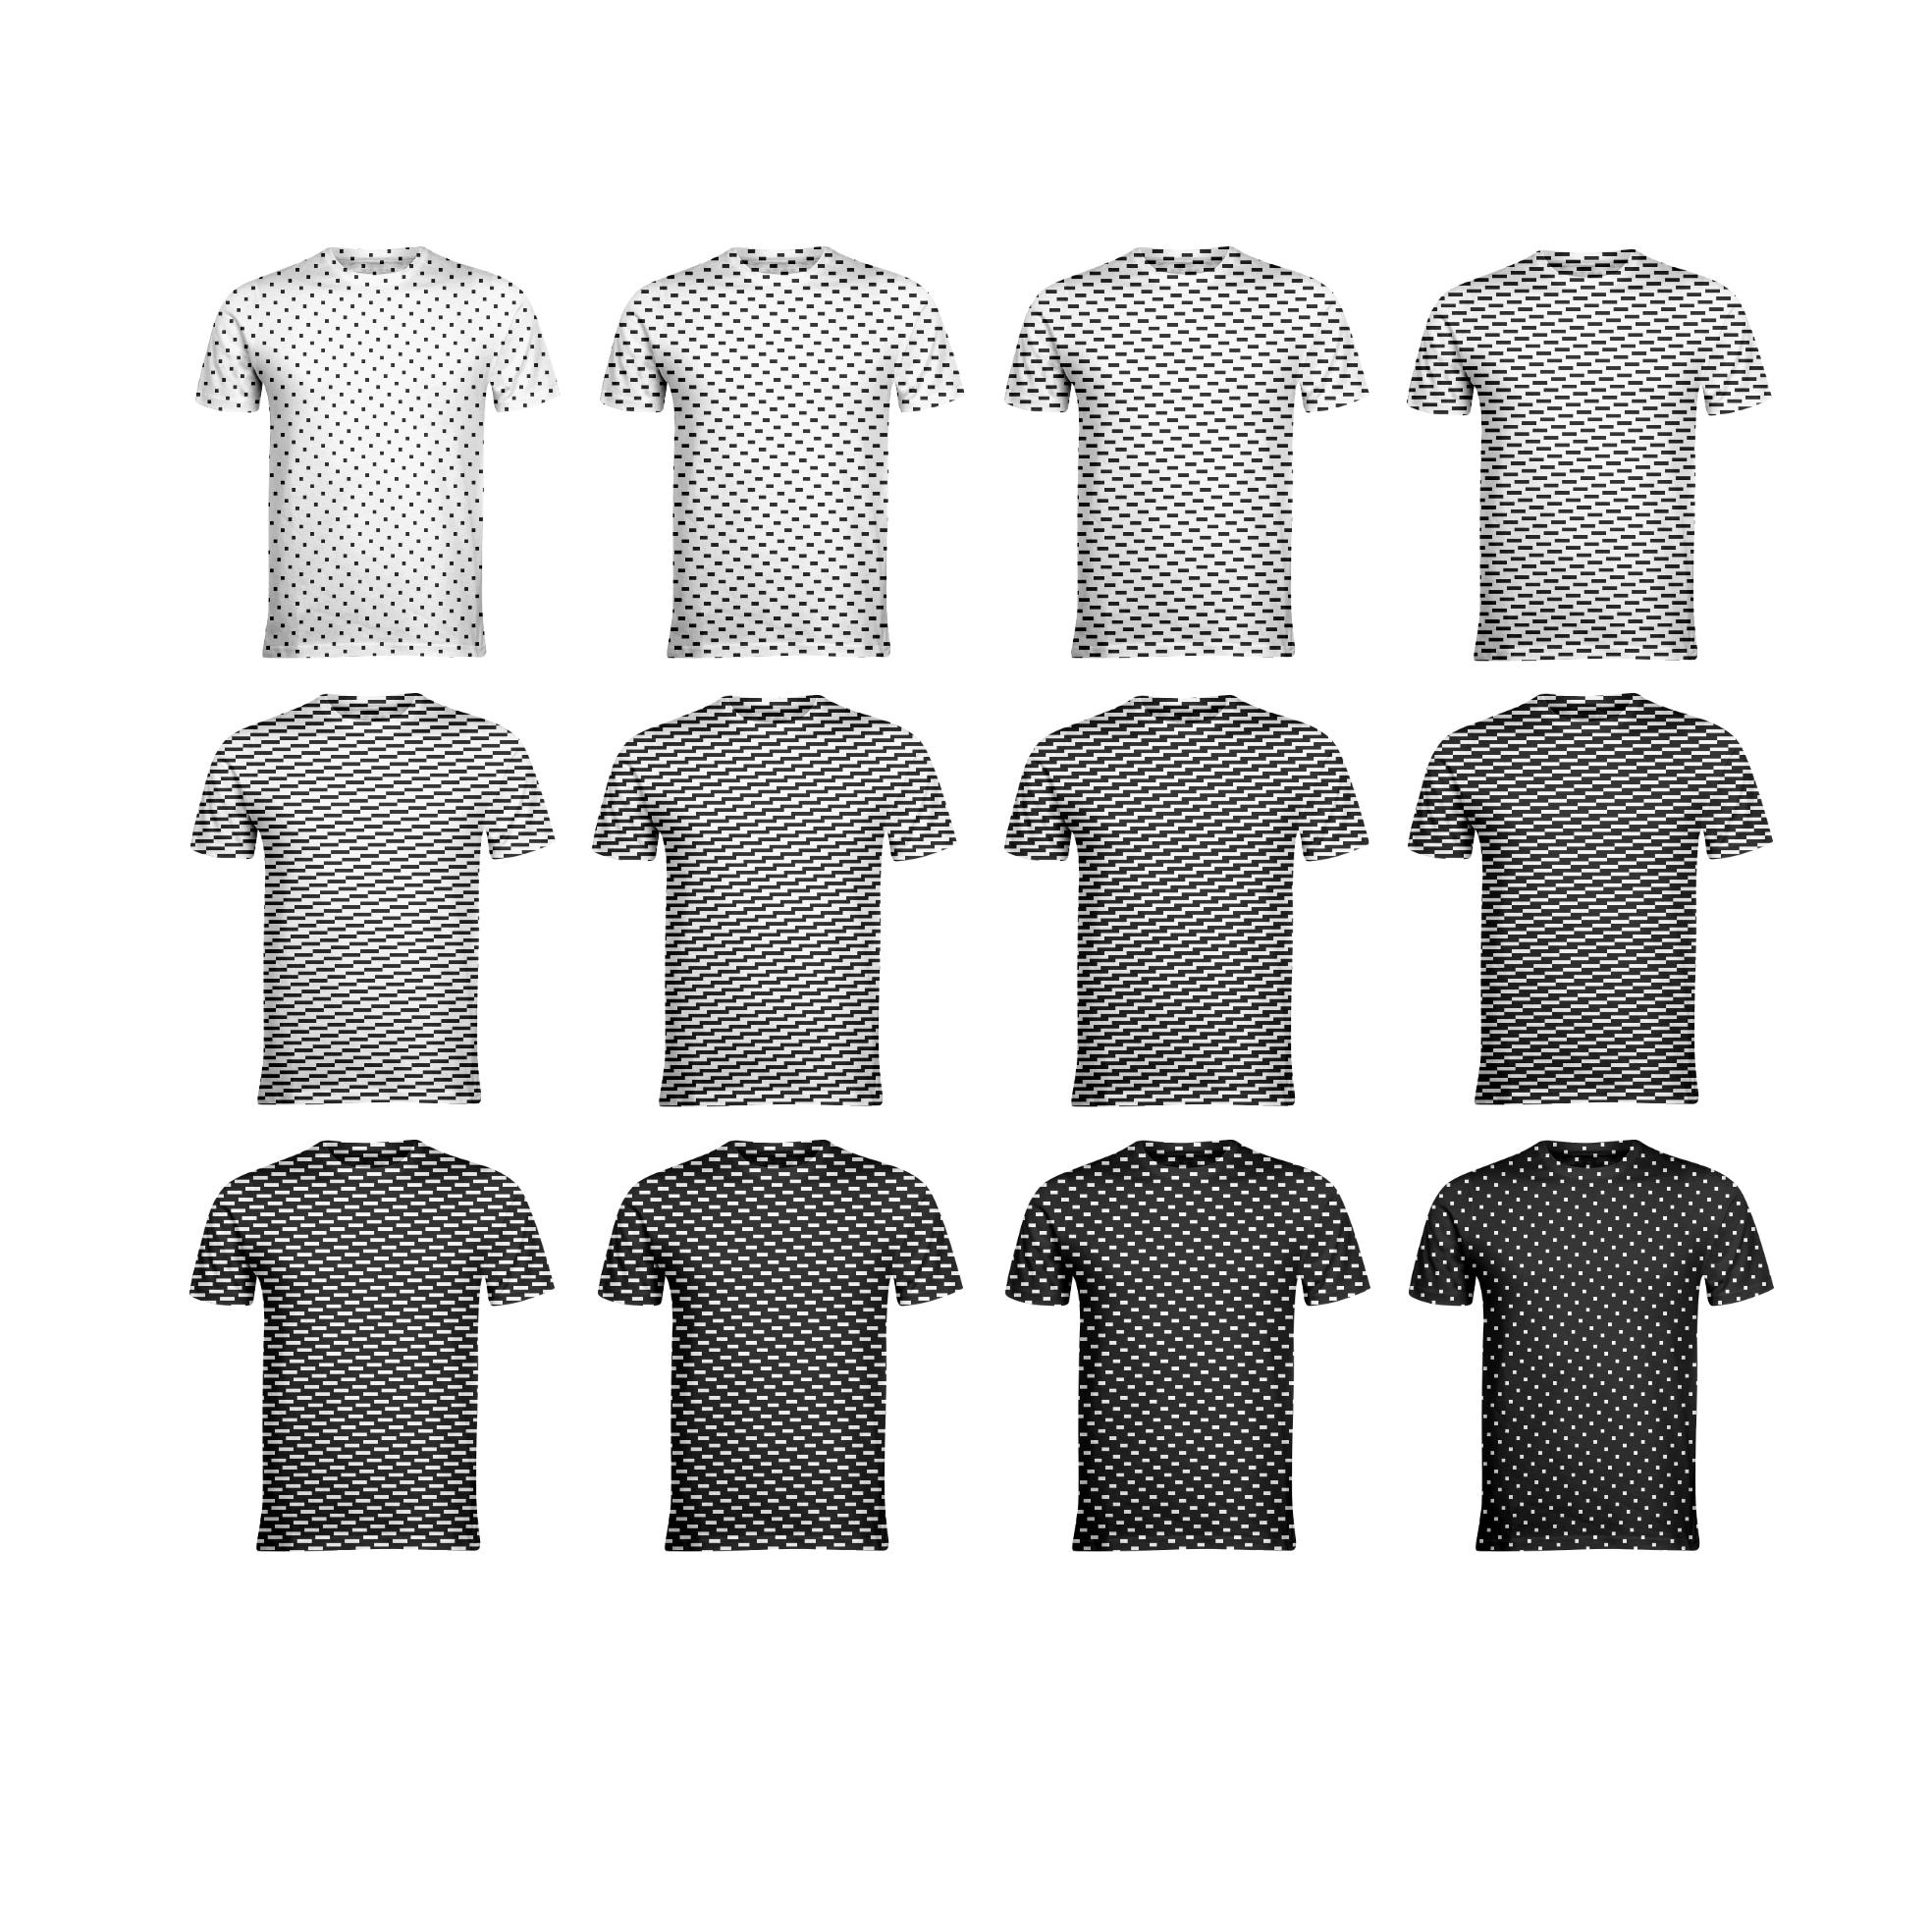 13_5 Satin Gradation Tees, 2018  This collection explores weave structures as graphic patterns and gradation systems. I am interested in the subtlety of the gradations that provide the structure for woven cloth and a shaded appearance that relate to halftones, bitmaps and other graphic design logic systems.  This series is available for  purchase .